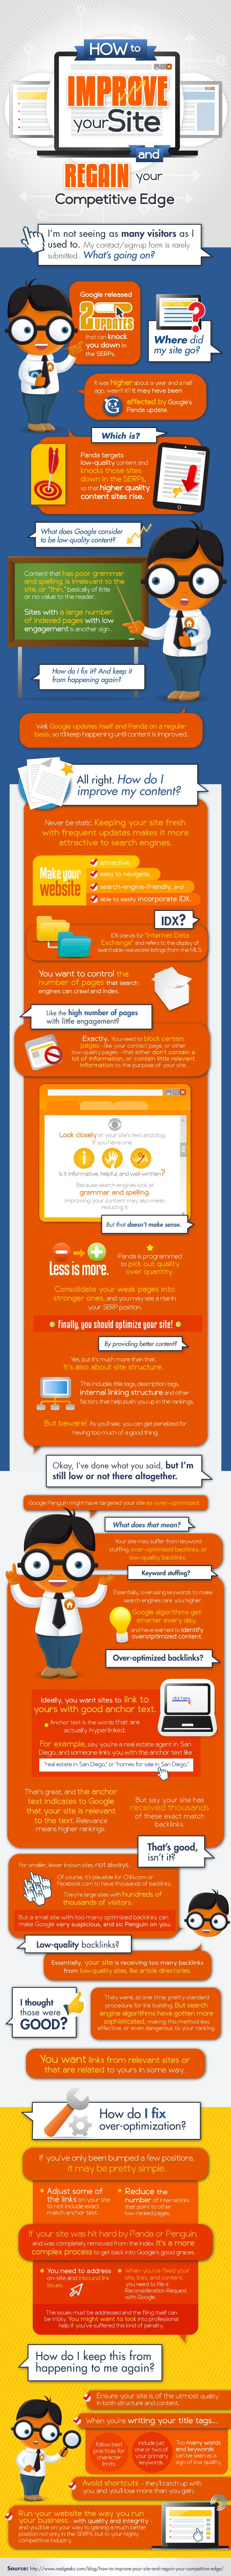 INFOGRAPHIC: How to Improve Your Website and Regain Your Google Traffic - Future Expat